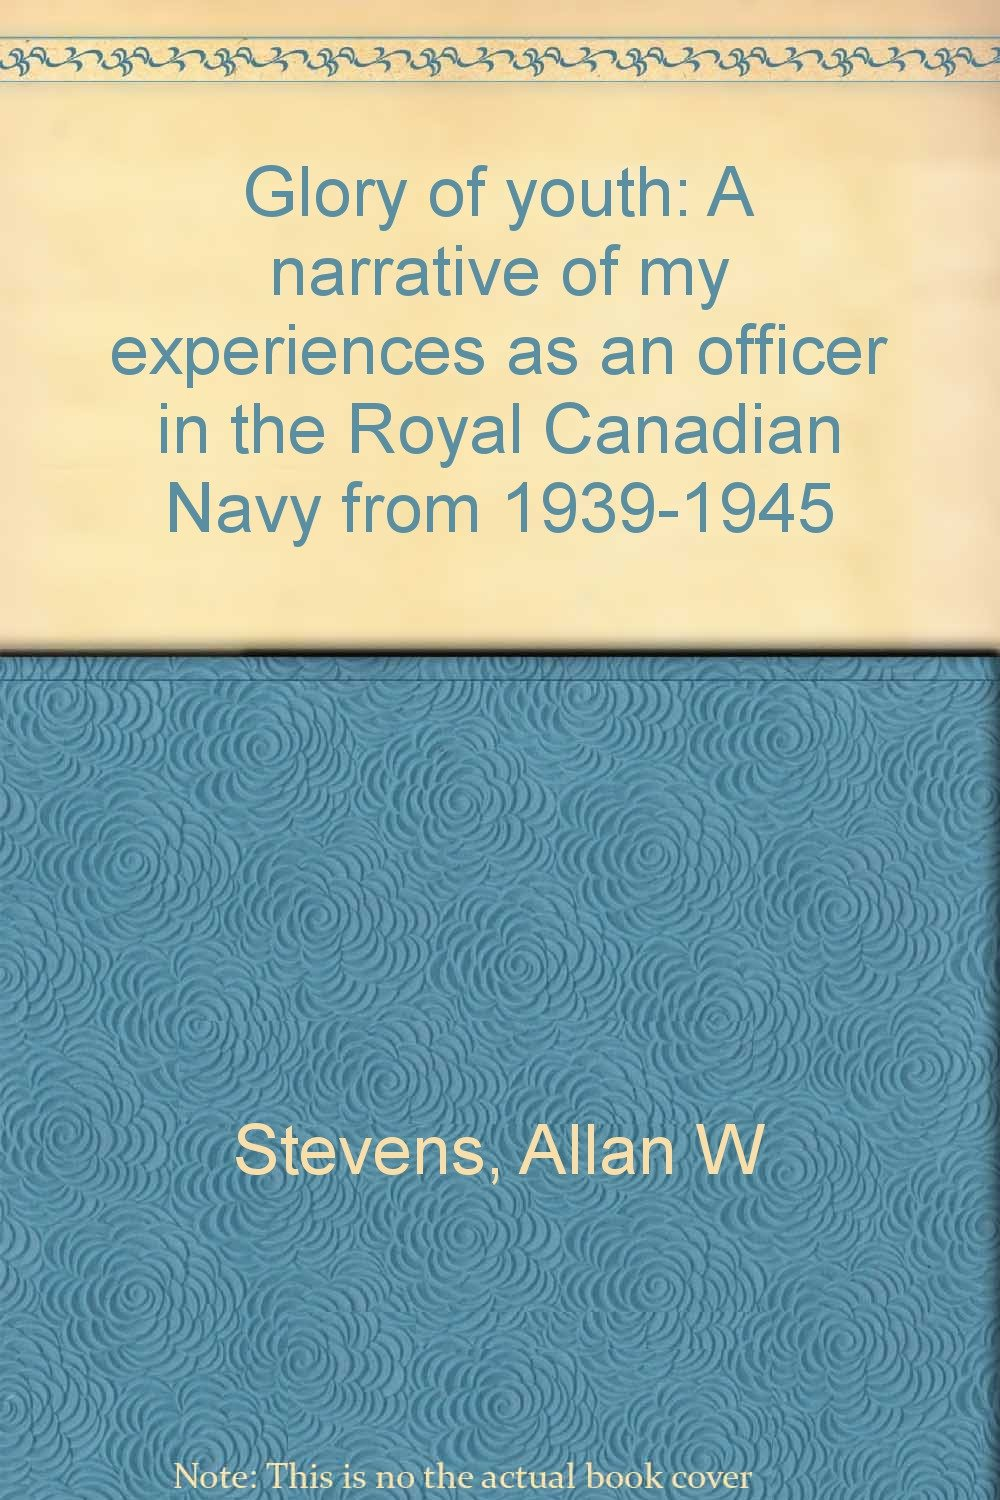 Glory of youth: A narrative of my experiences as an officer in the Royal Canadian Navy from 1939-1945